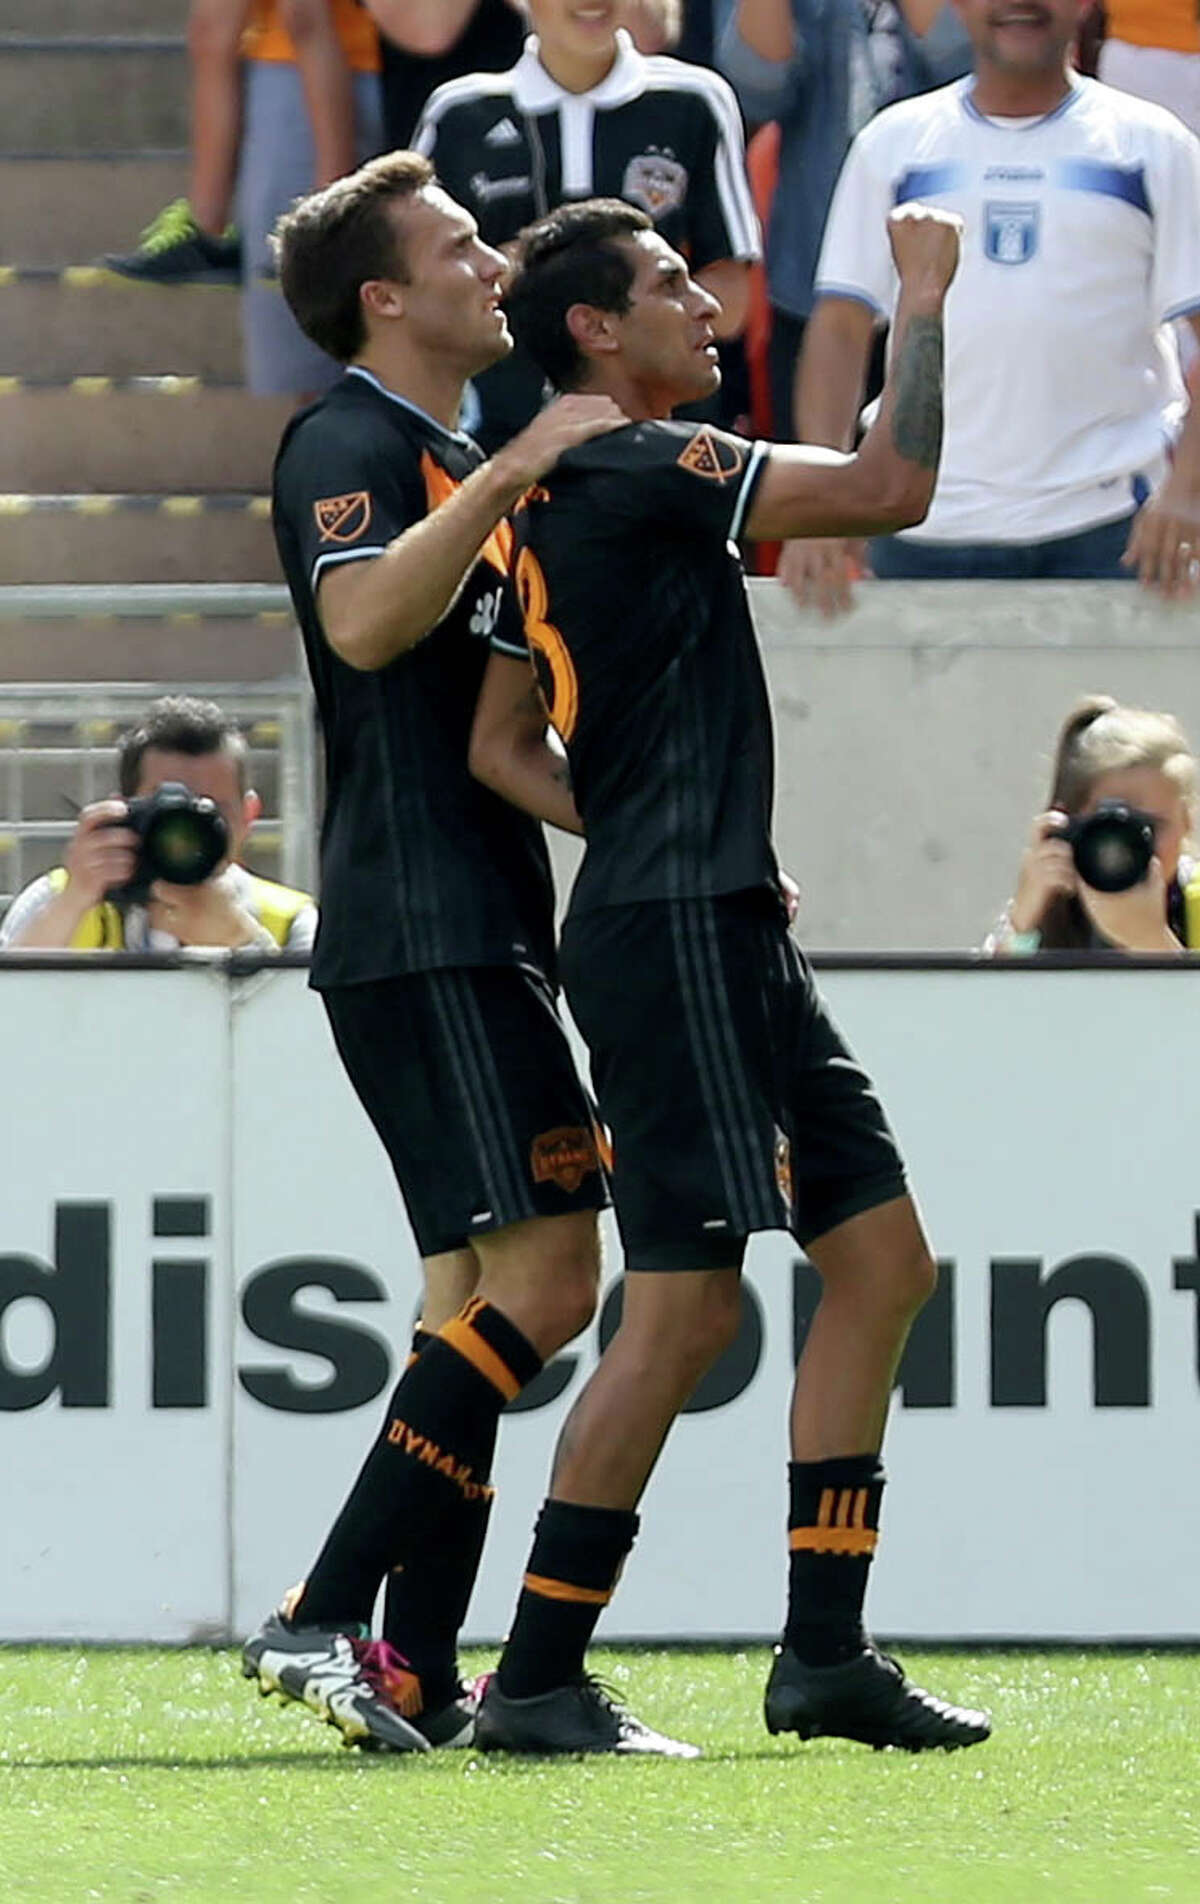 Houston Dynamo midfielder Cristian Maidana (8) celebrates wit teammate Houston Dynamo forward Andrew Wenger (11) after scoring a goal against the New England Revolution in the first half at BBVA Compass Stadium Sunday, March 6, 2016, in Houston.